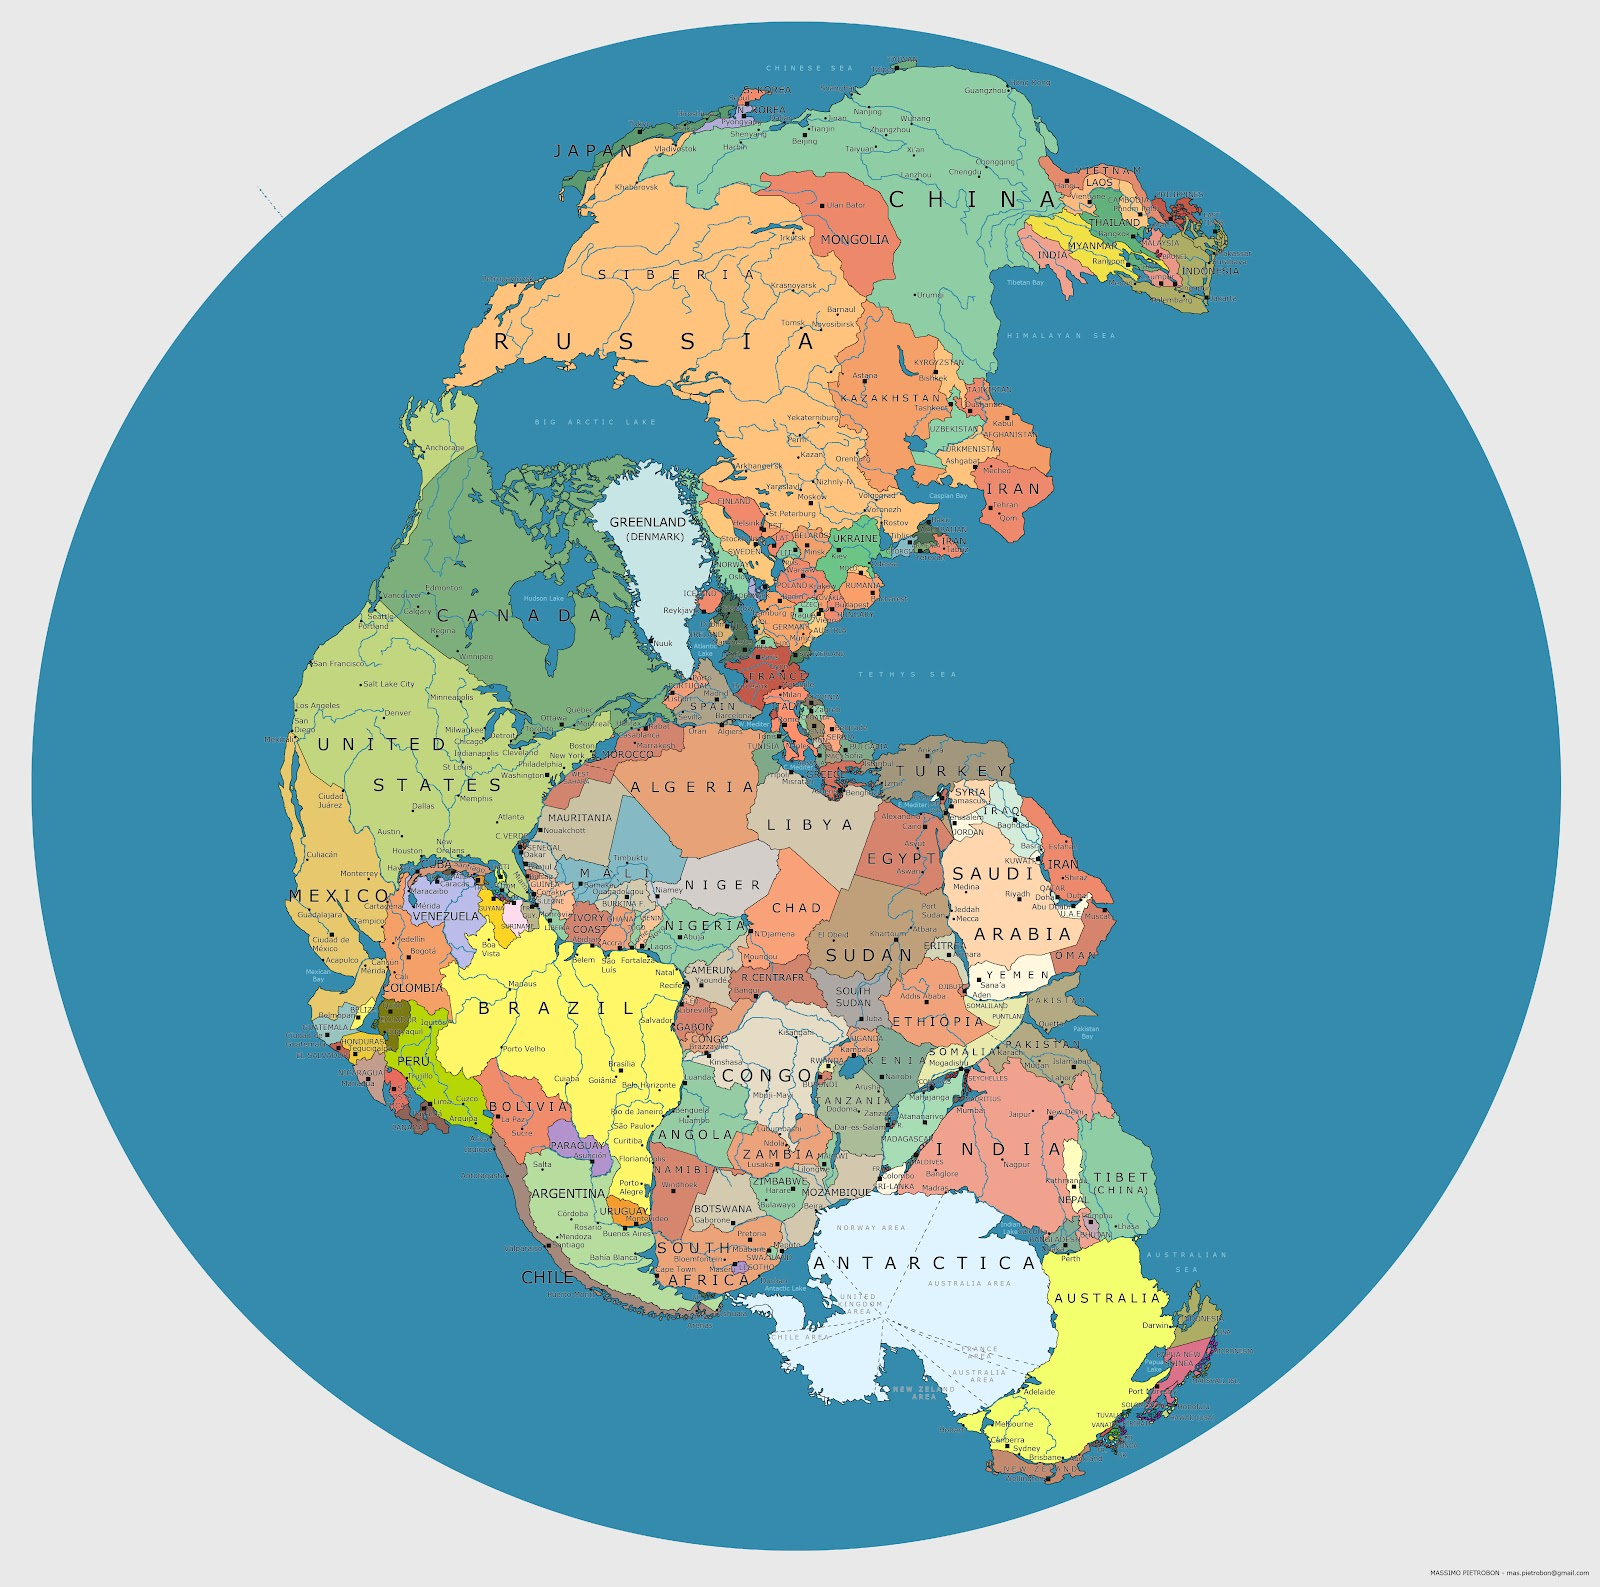 21 maps that will blow your mind gallery ebaums world 2 map of pangea with current international borders gumiabroncs Image collections